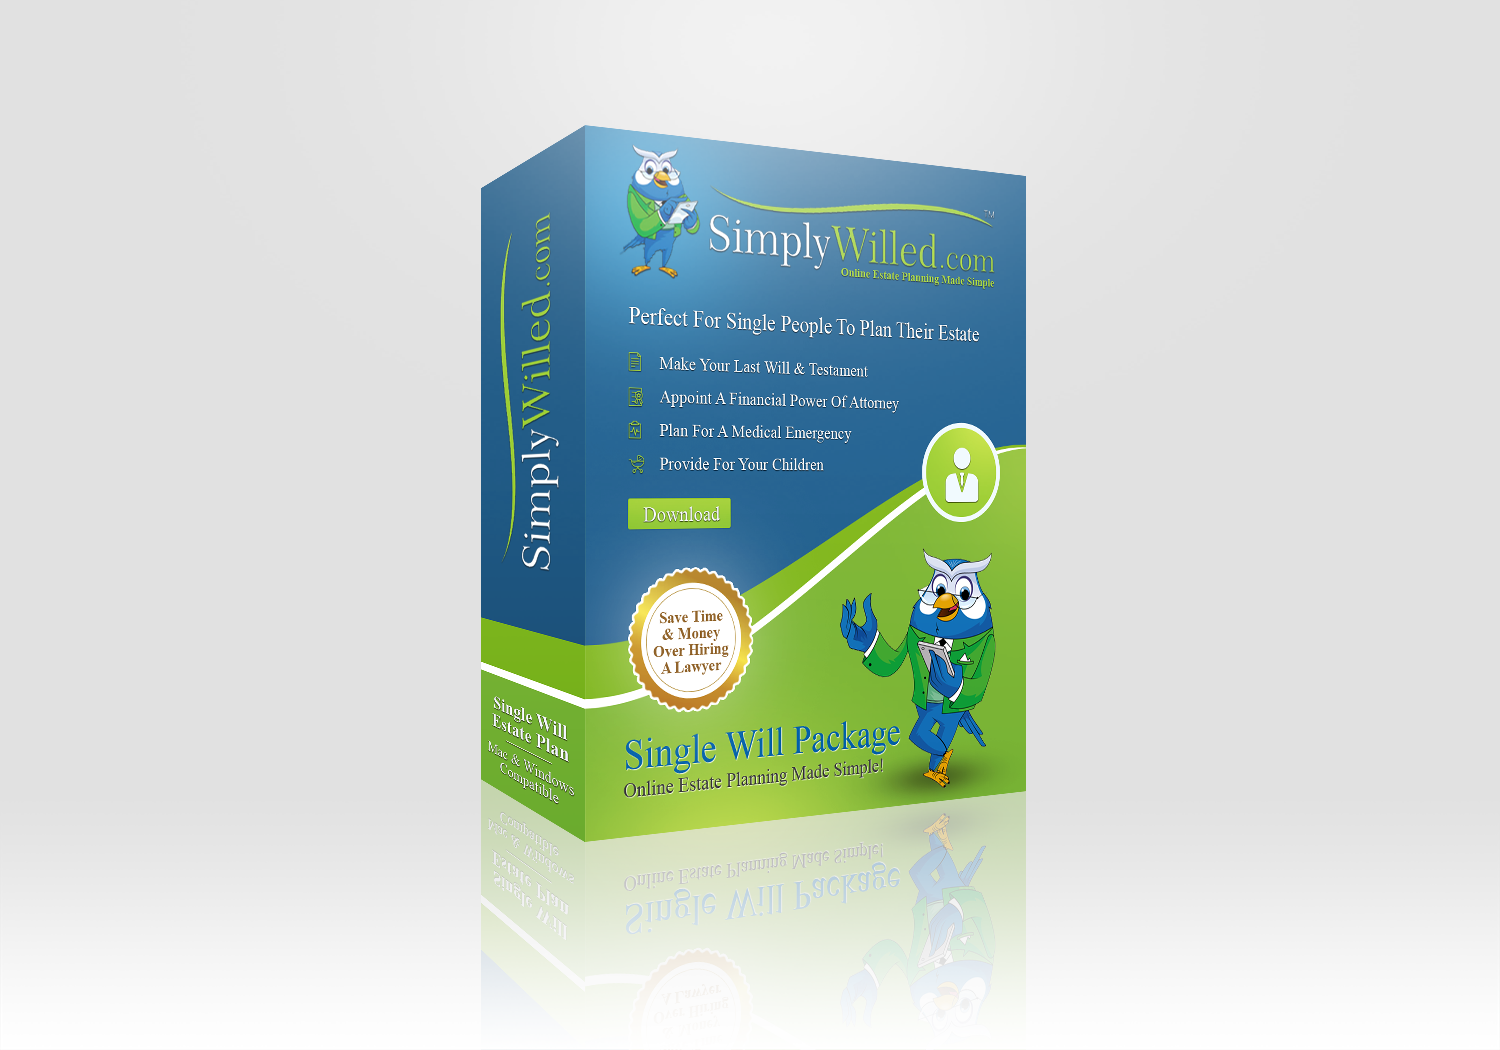 SimplyWilled.com Product Box